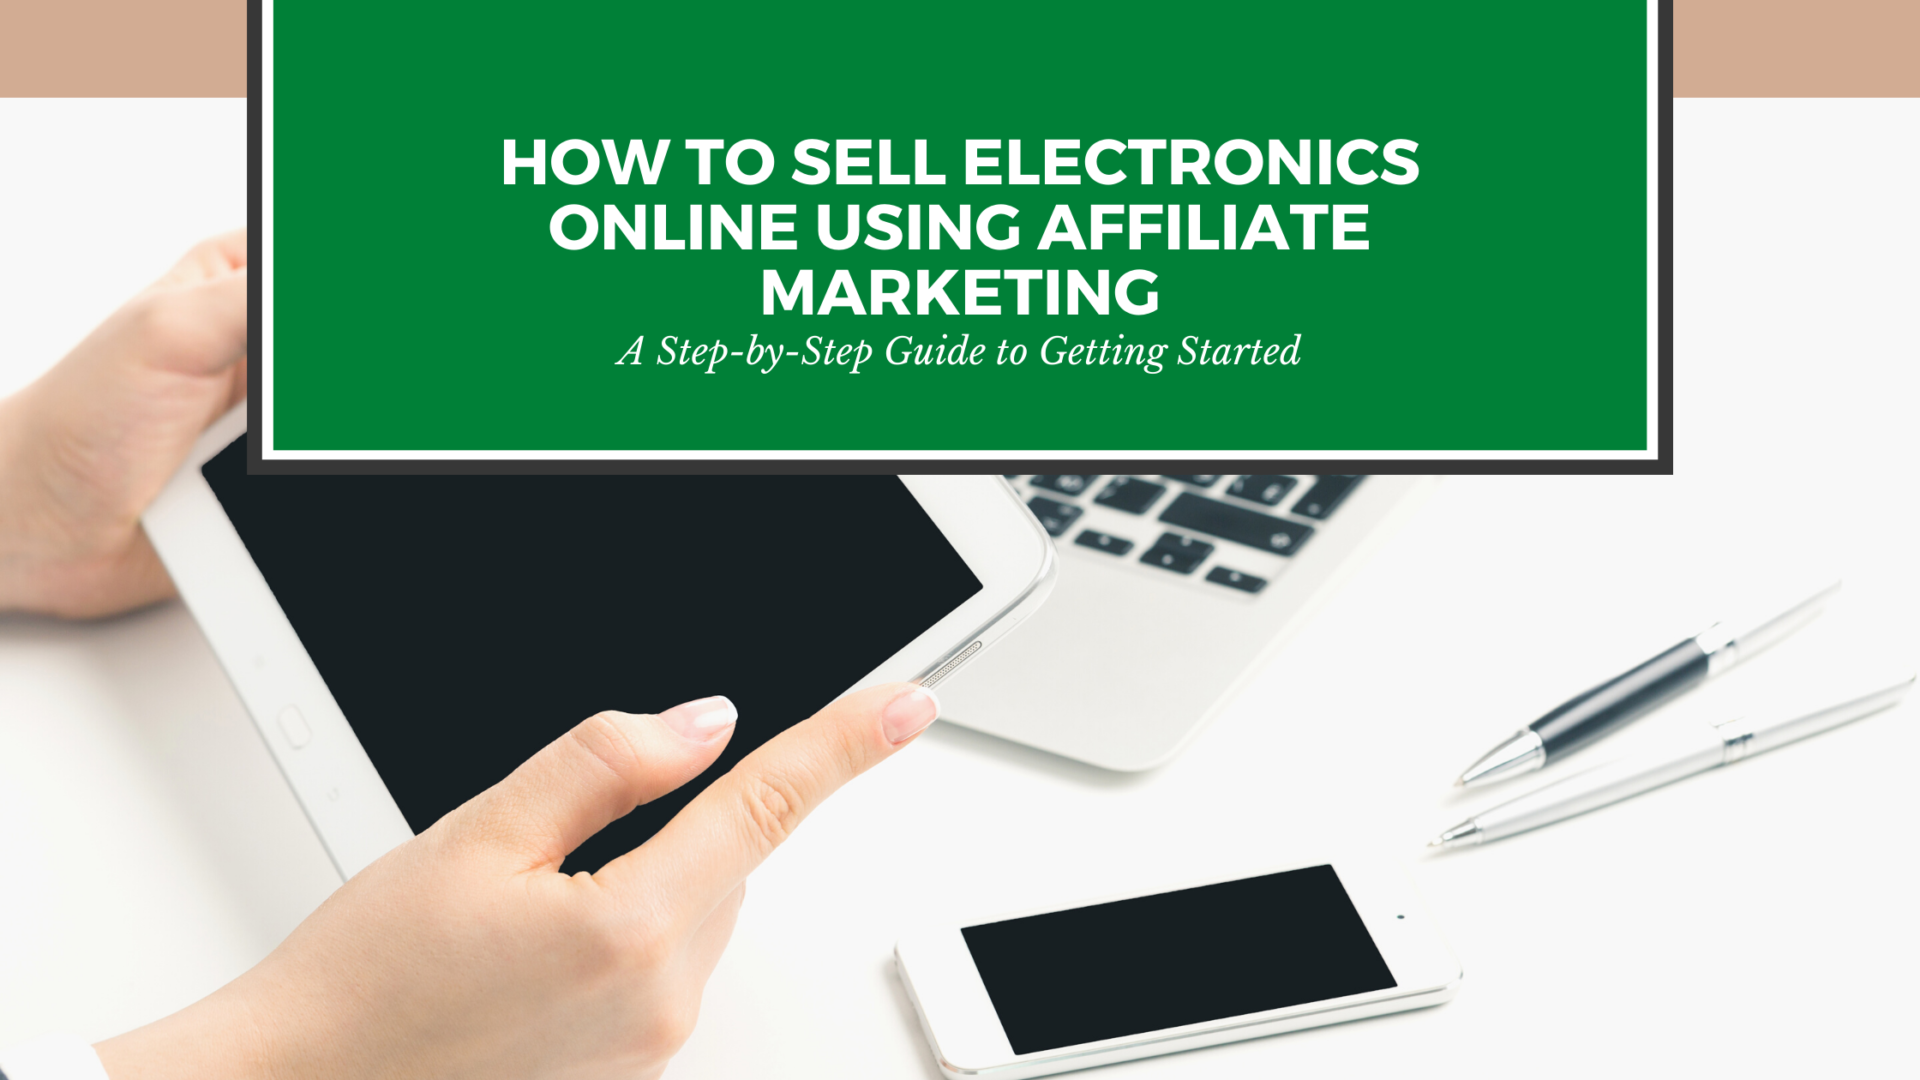 How to sell electronics online using affiliate marketing